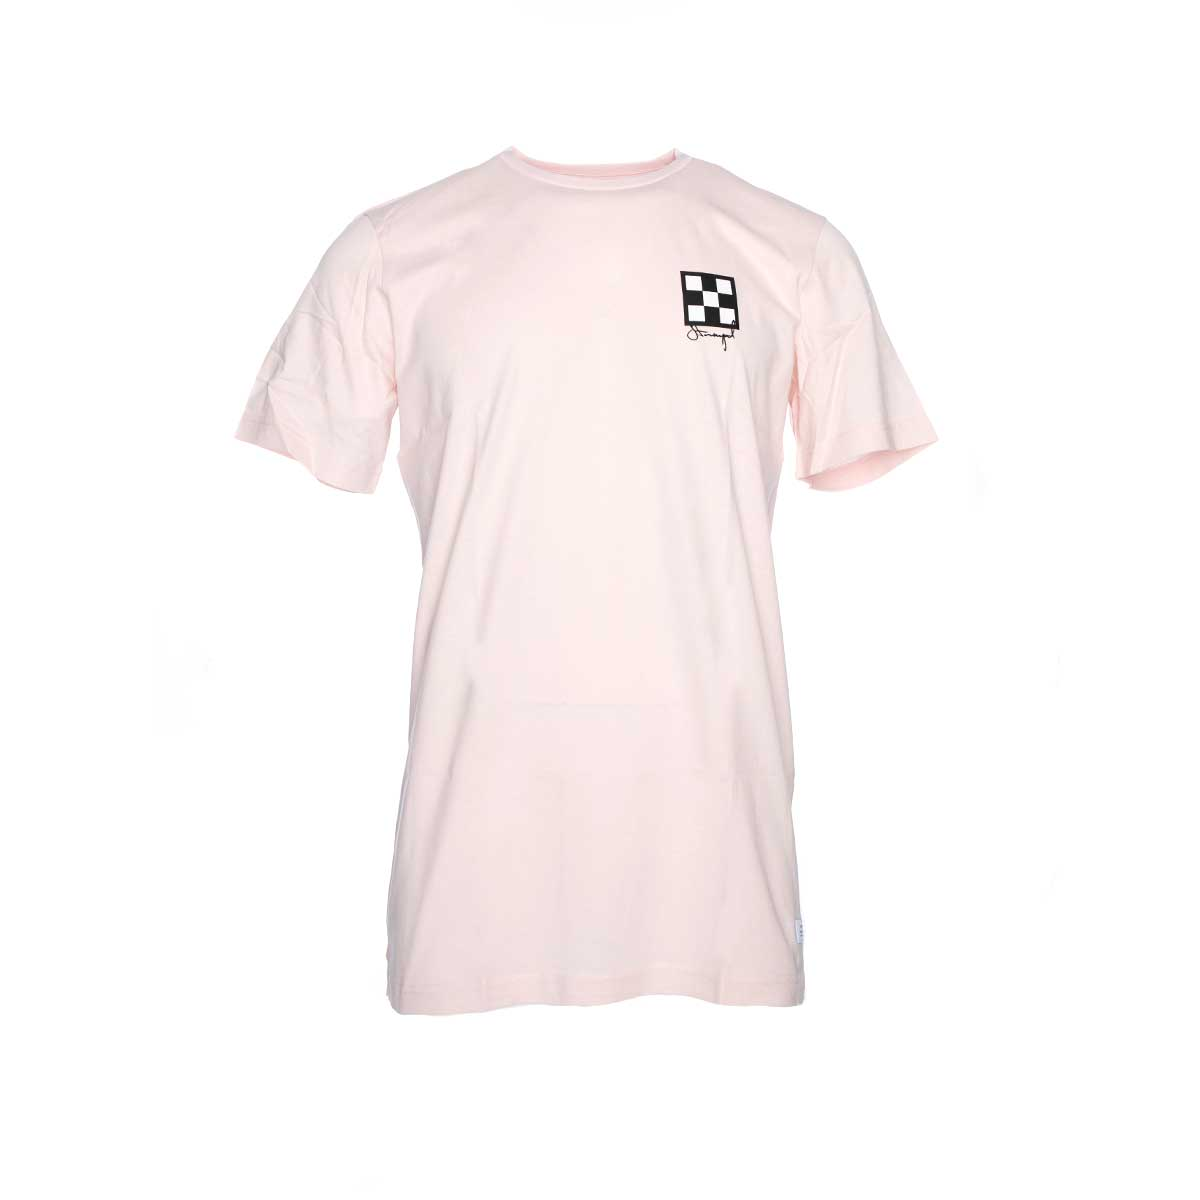 Stampd Good Turn Tee Pink